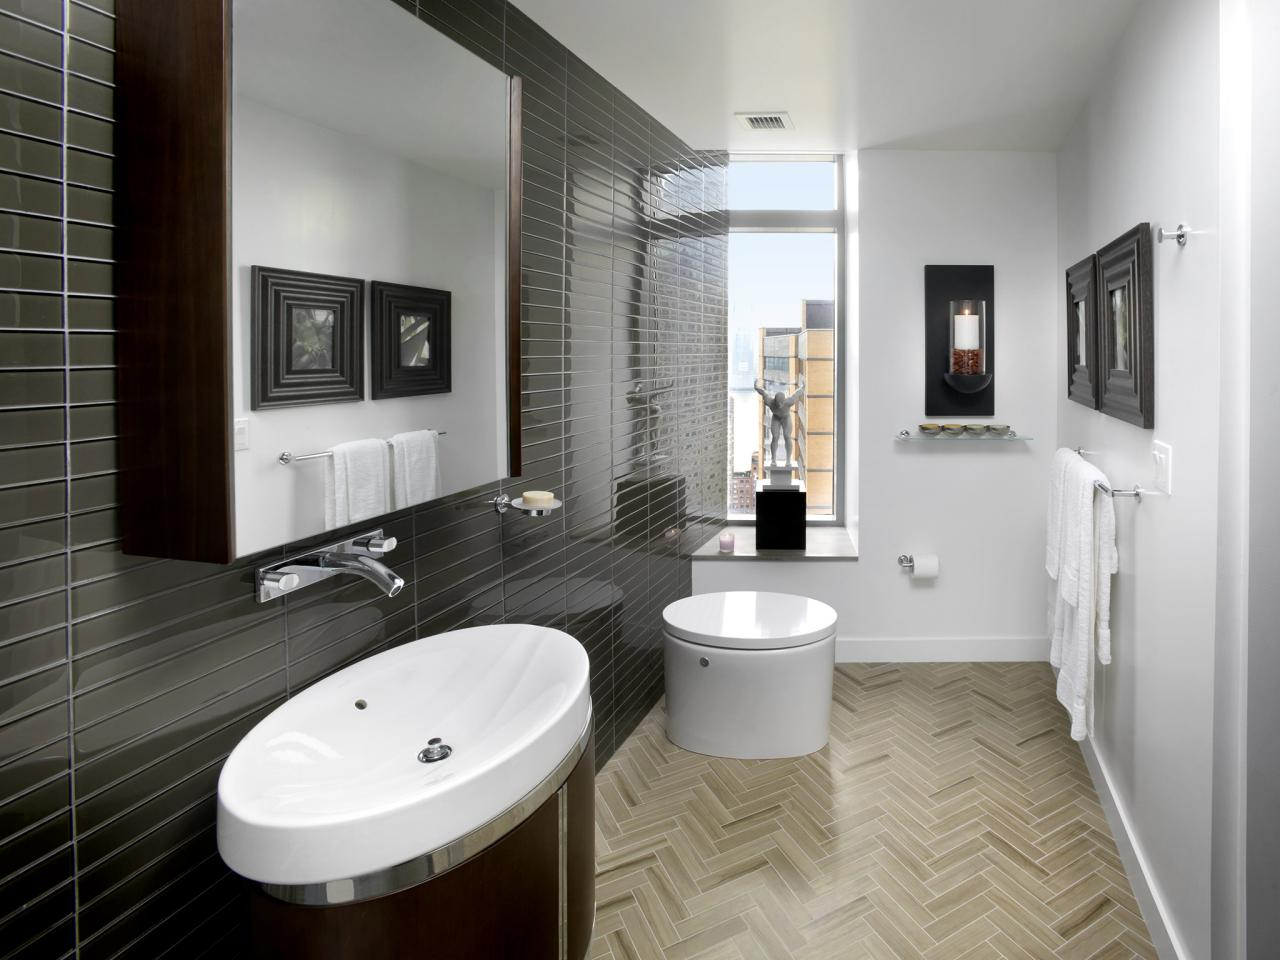 small bathroom decorating ideas - Bath Design Ideas